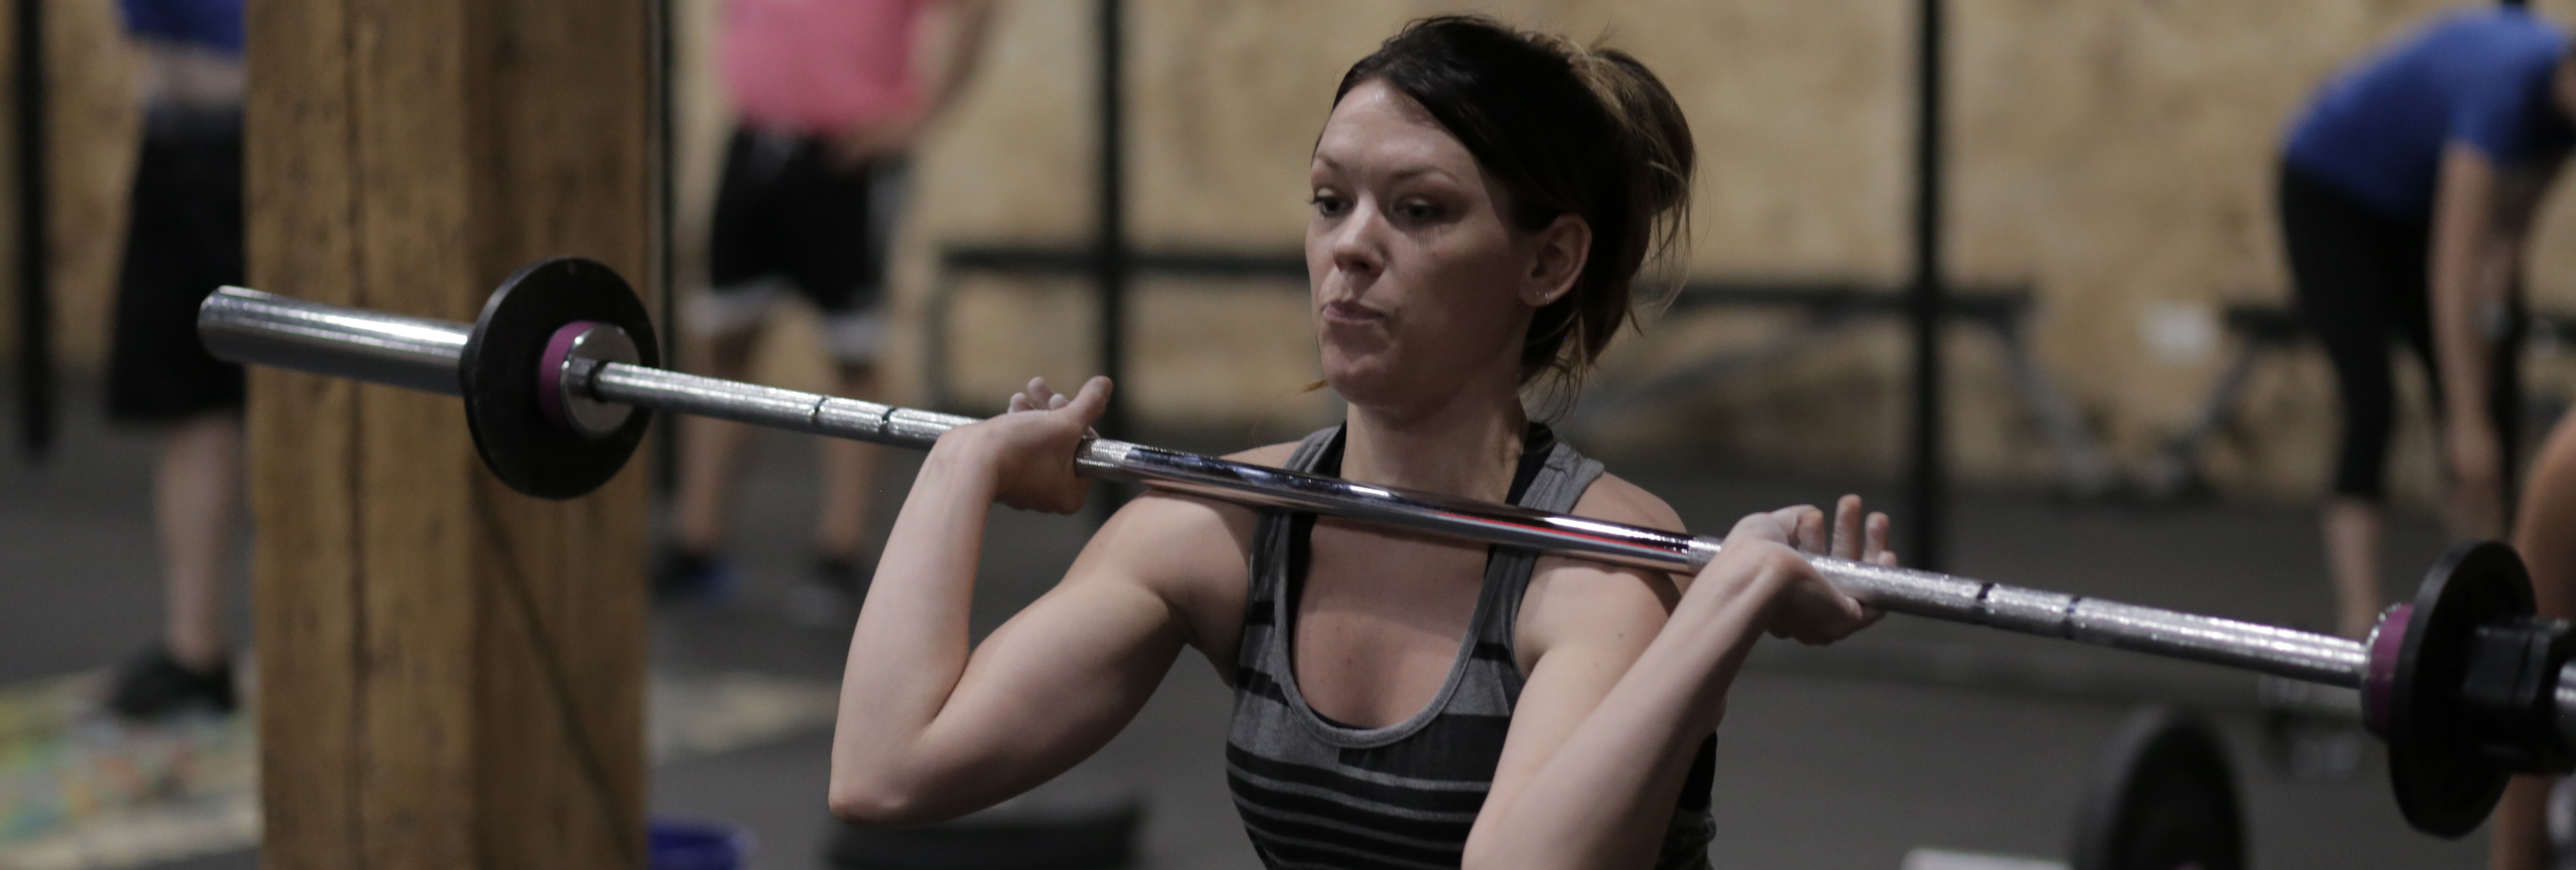 Personal Training in Chicago